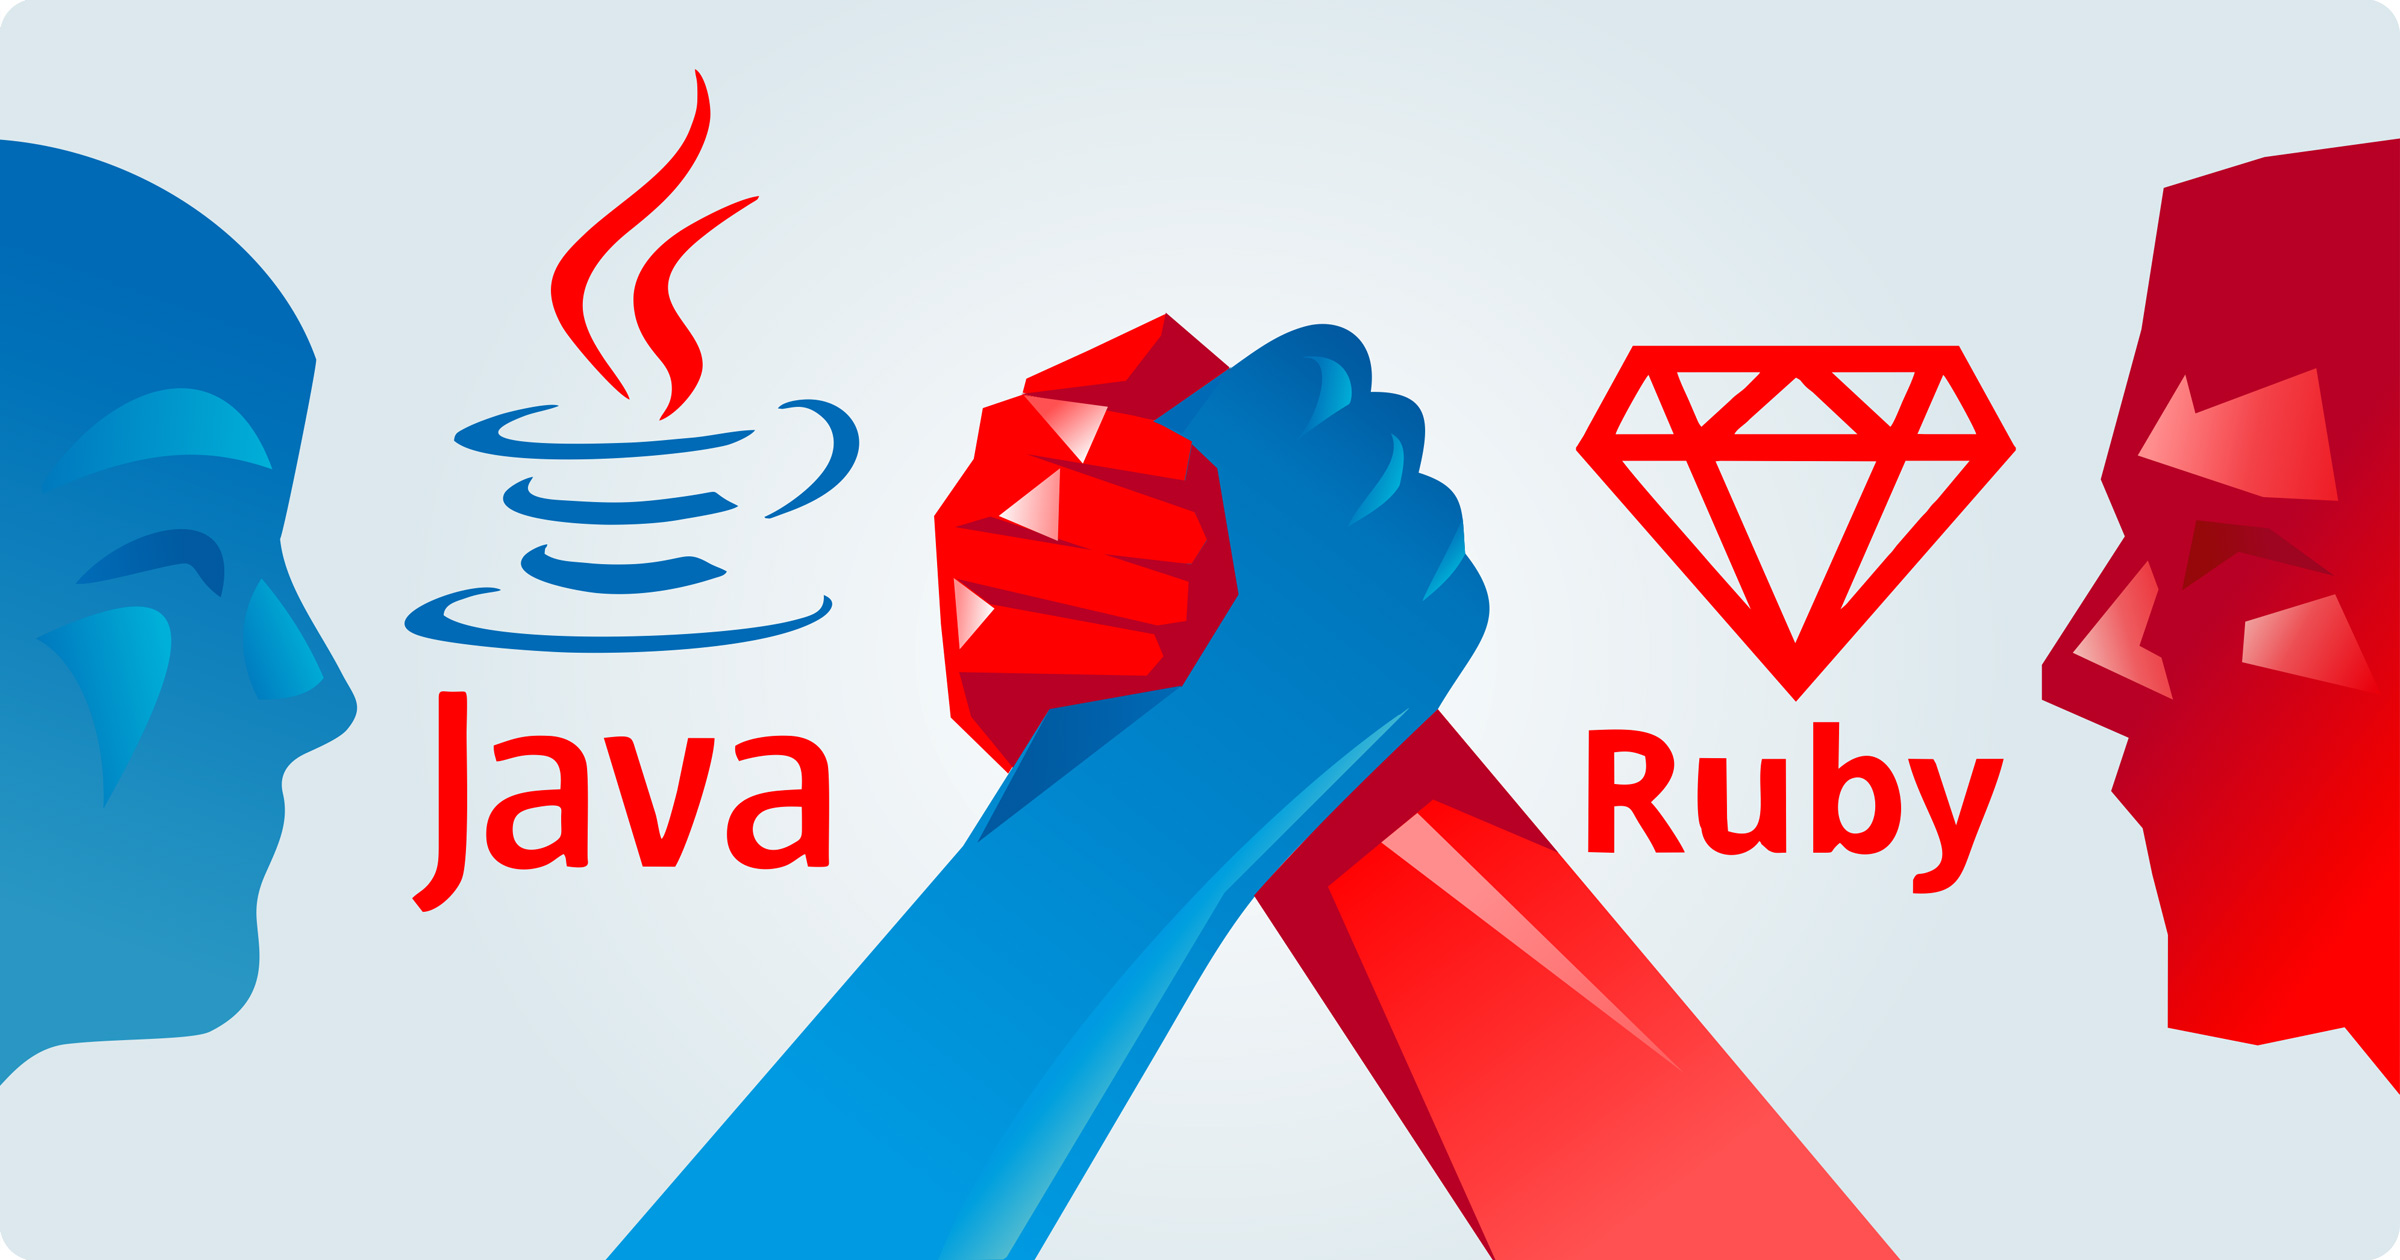 Ruby vs Java - which technology to choose?